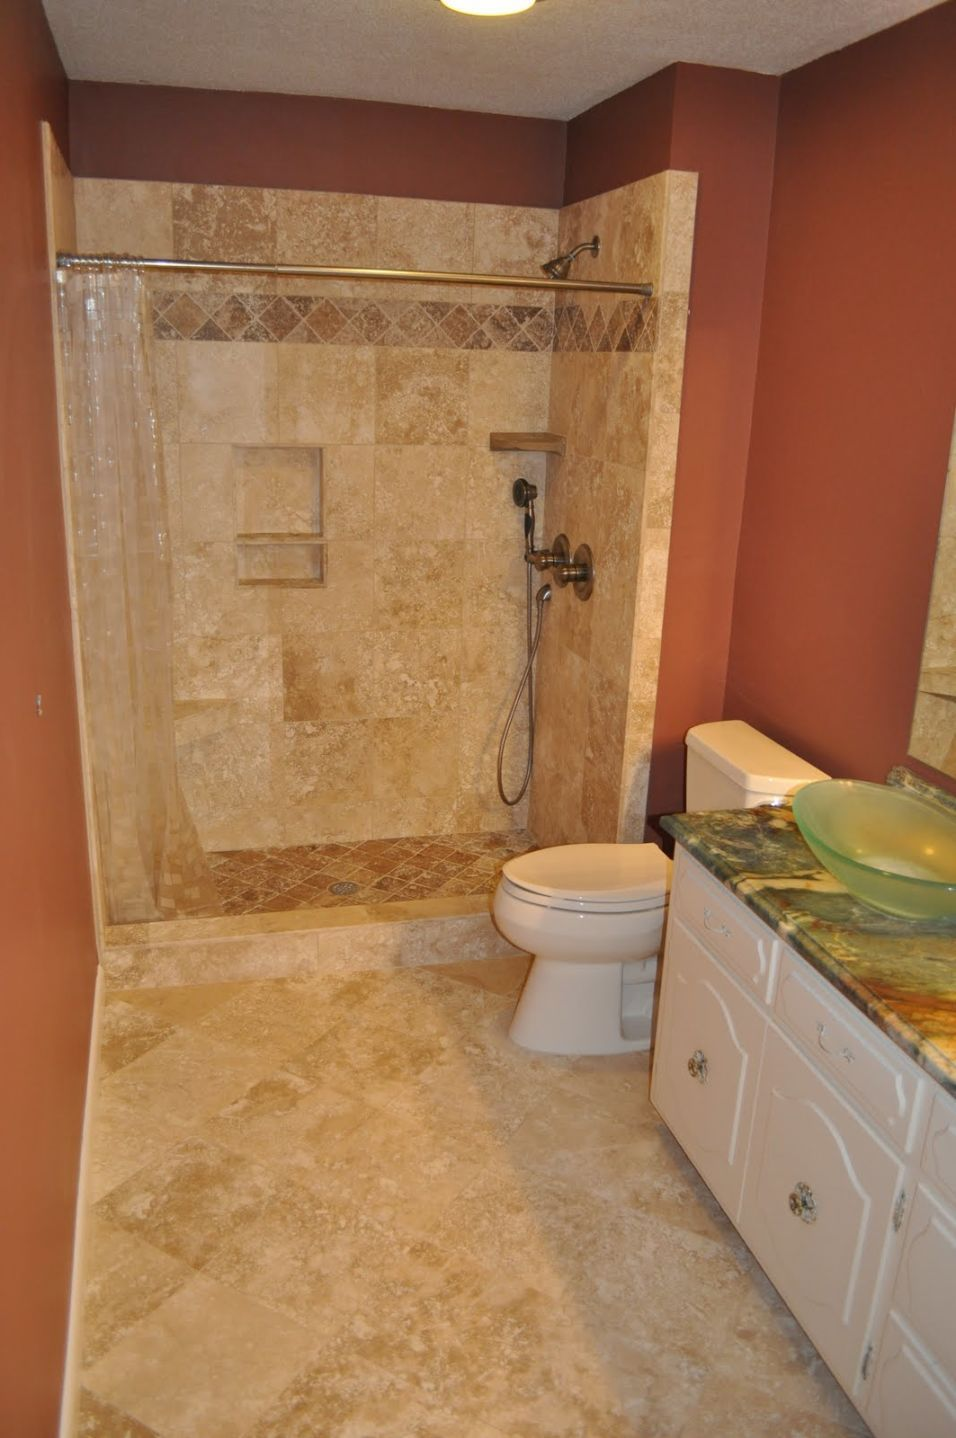 Small Bathroom Stand Up Shower Ideas Want To Know More Click On The Image Bathroomremodel Bathroom Remodel Photos Bathroom Layout Plans Bathroom Stand